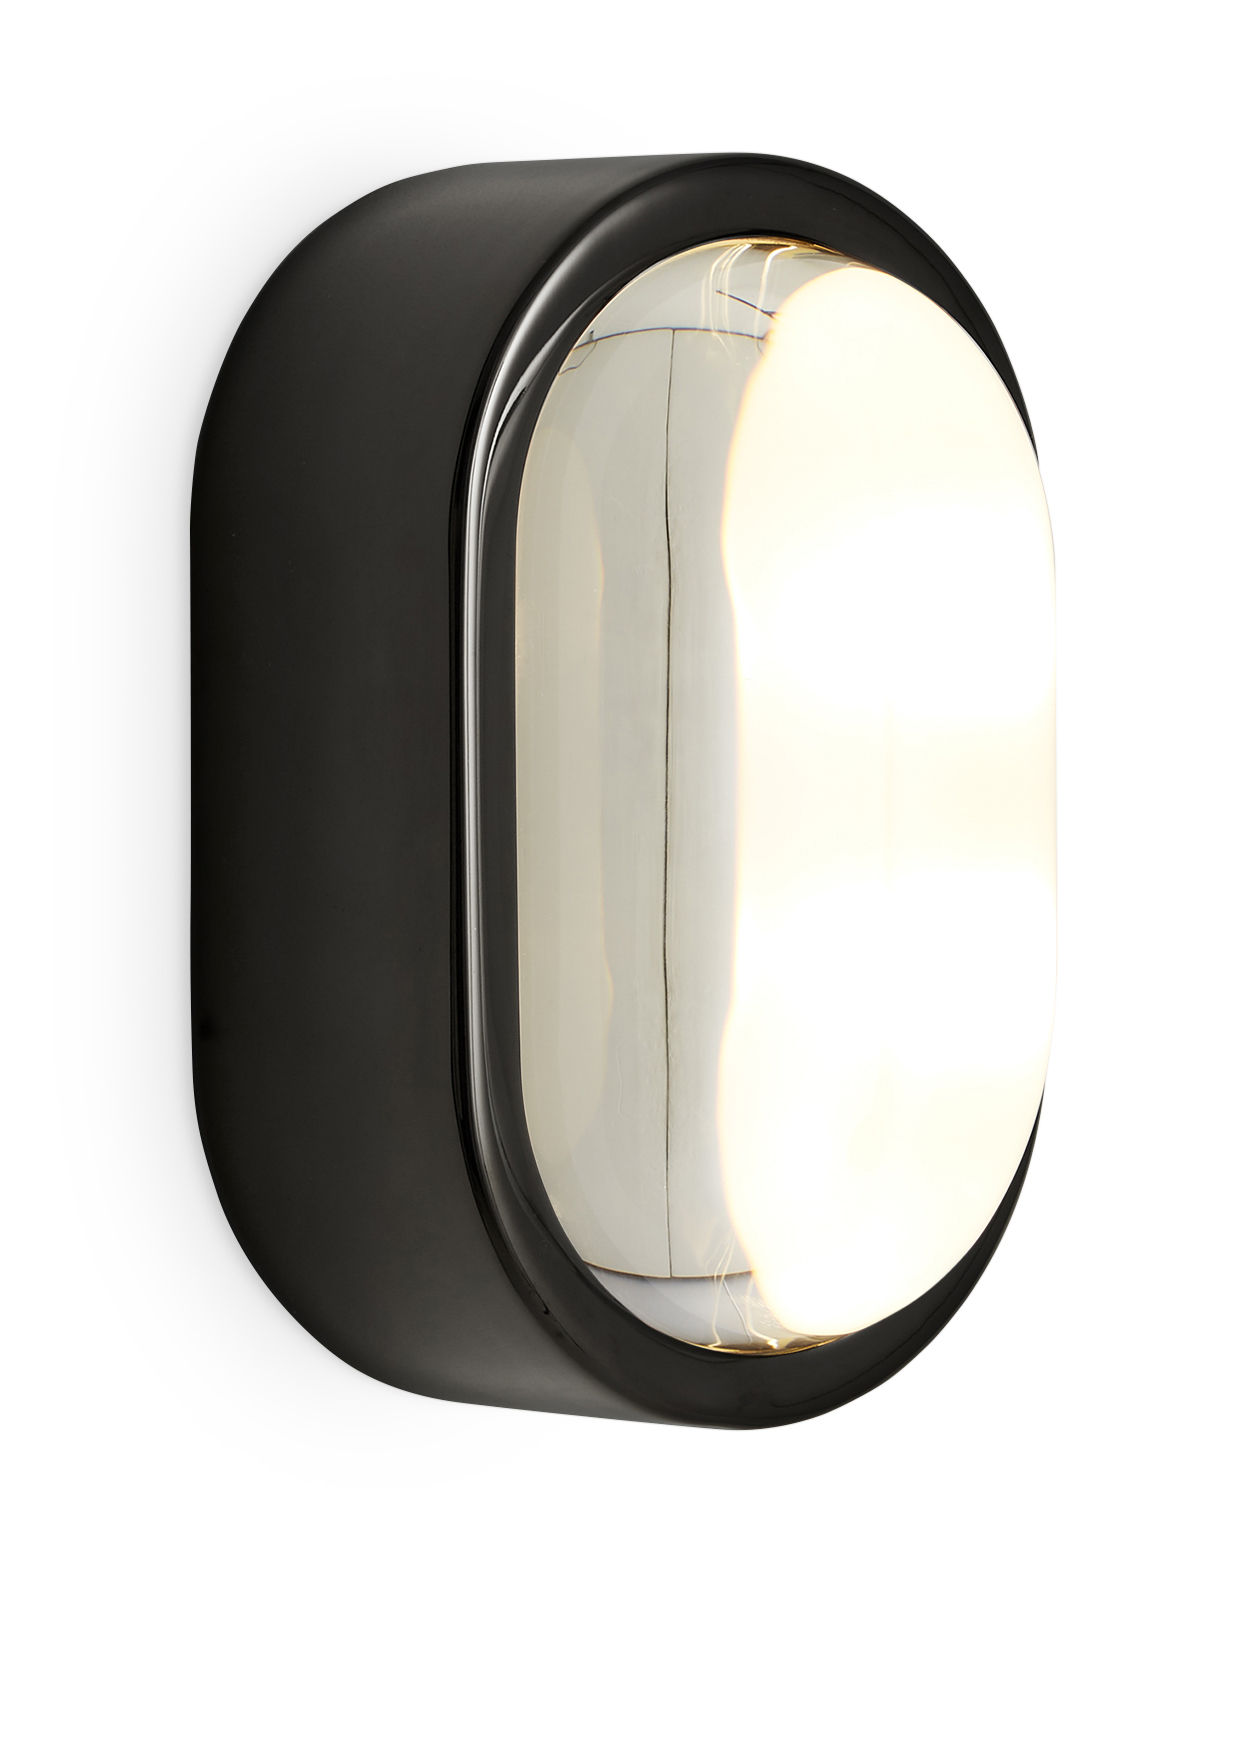 Spot Applique Applique Spot Led Ovale 18 X 10 Cm Tom Dixon